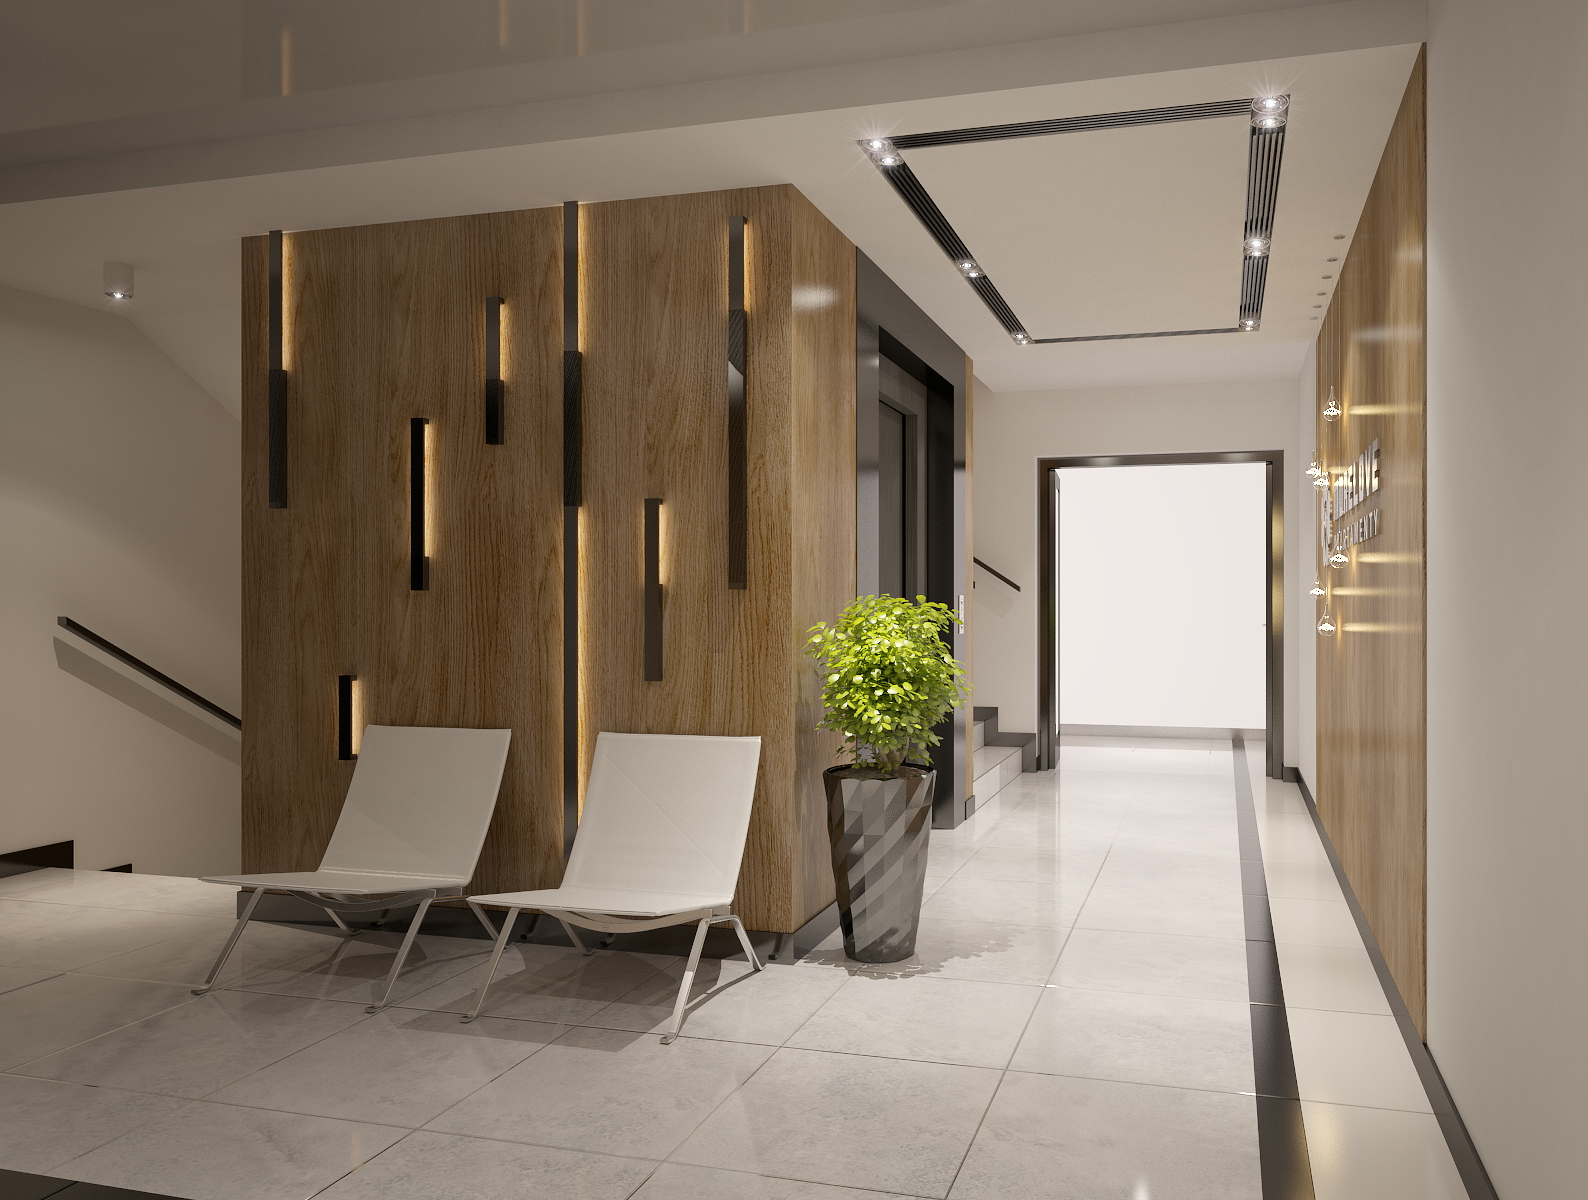 interior design of apartments building entrance ha 3d model 3ds max fbx c4d obj 223703